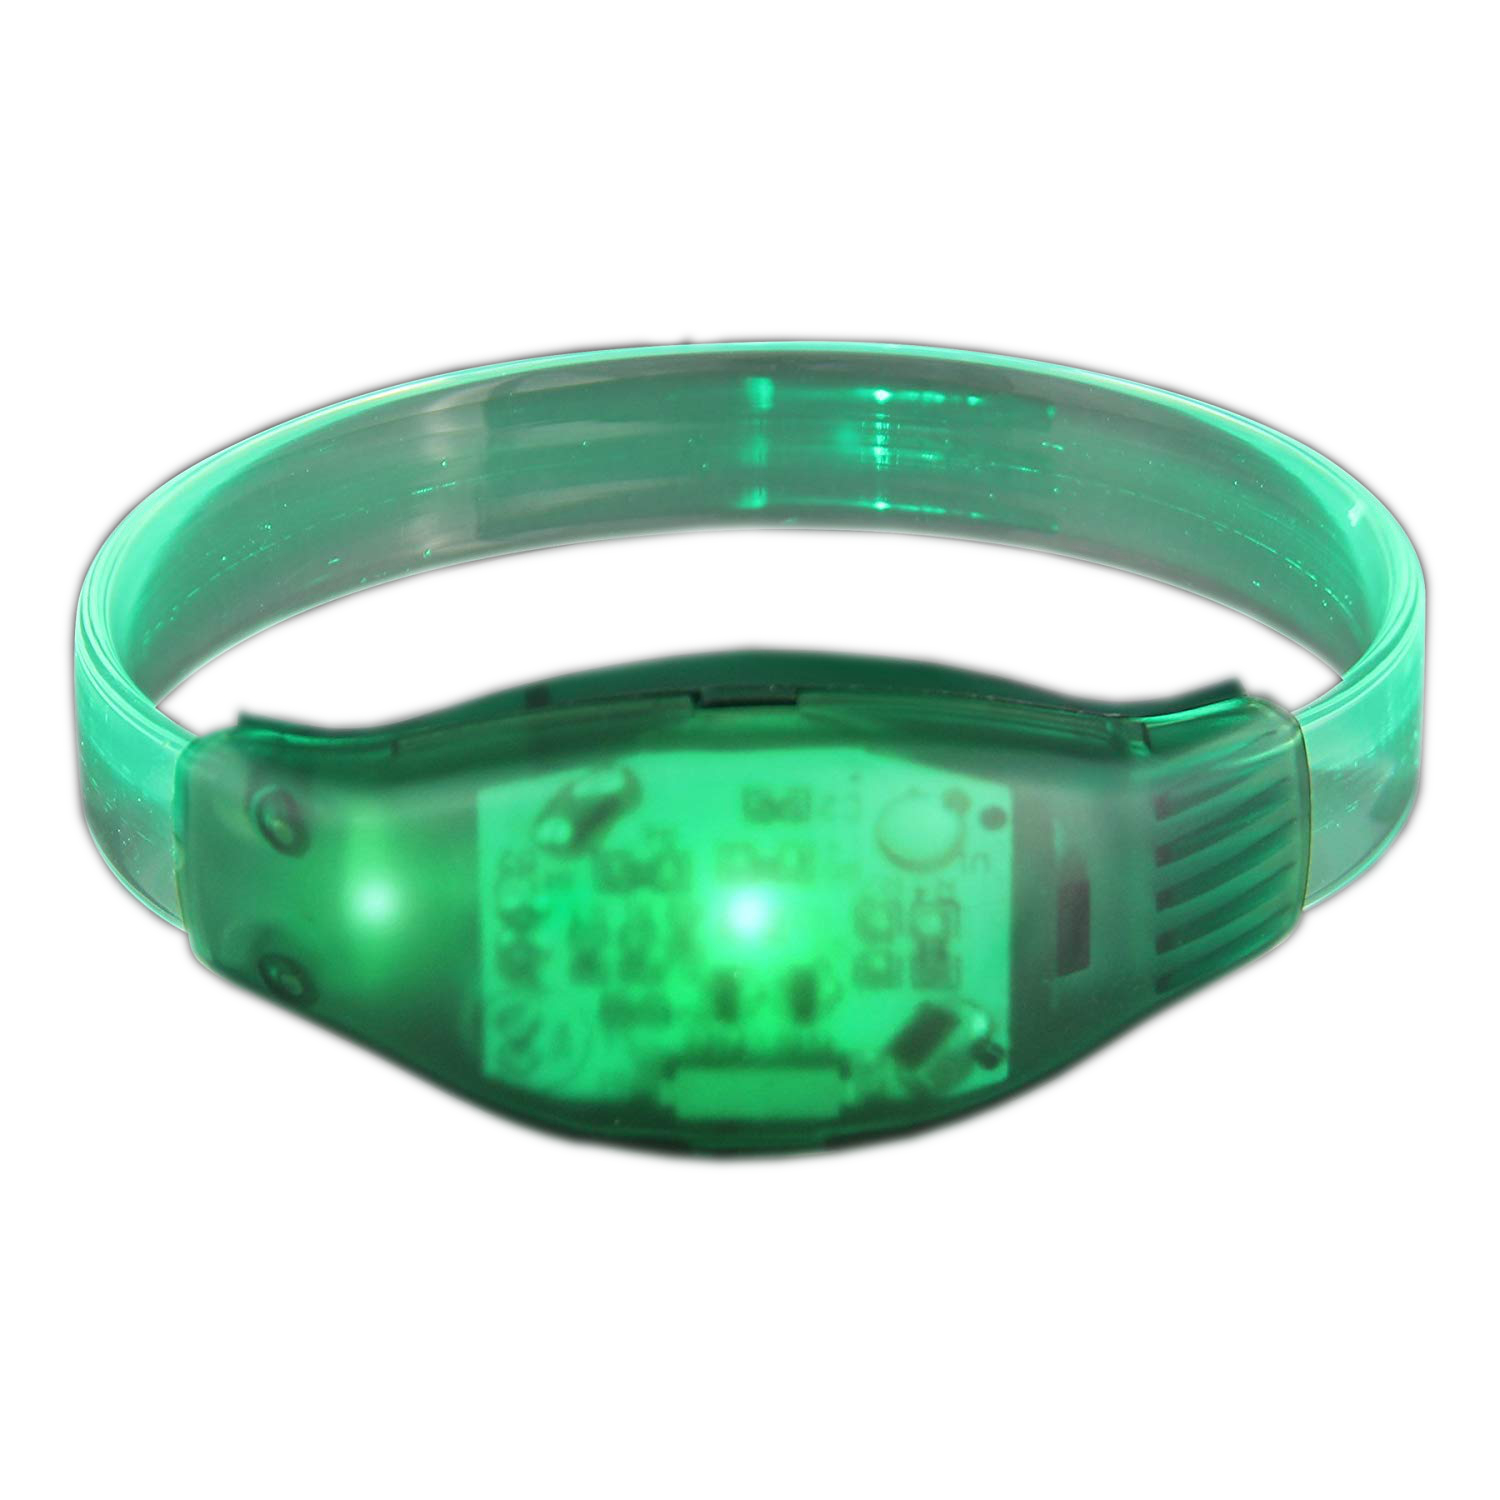 Sound Activated Green LED Bracelet All Products